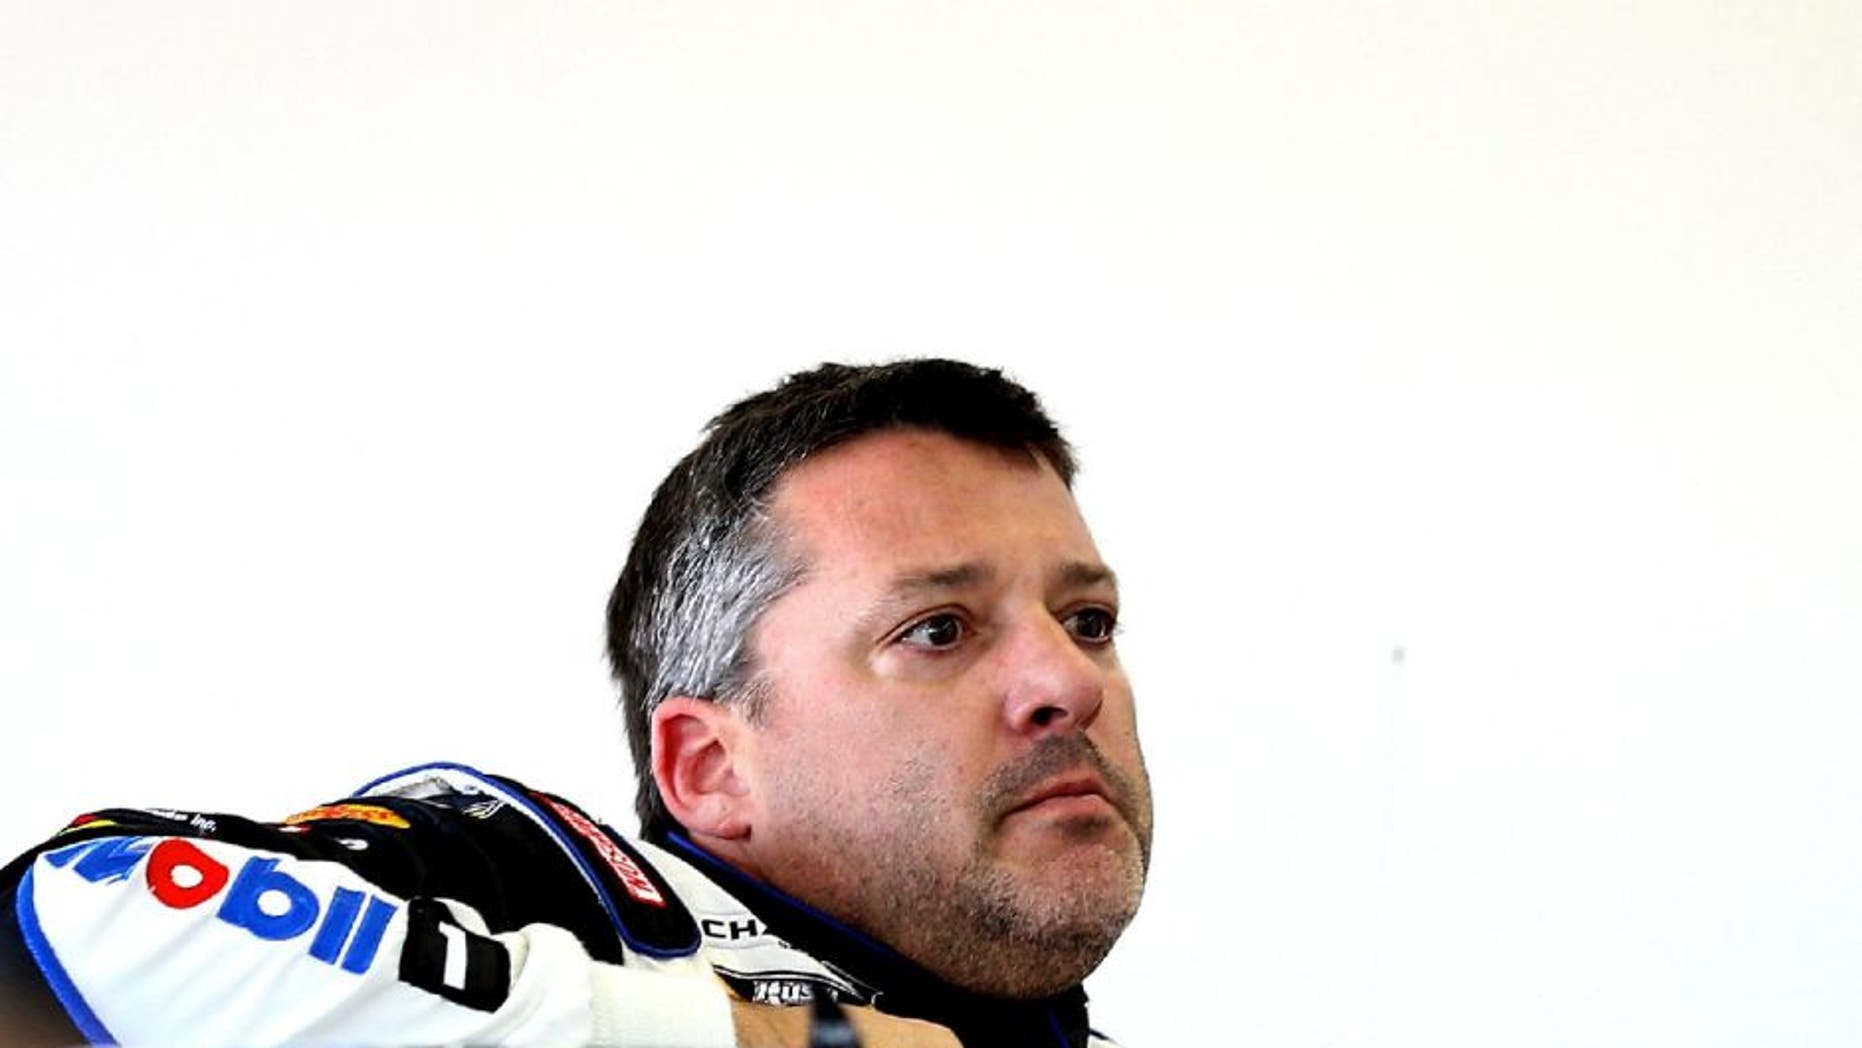 LAS VEGAS, NV - MARCH 06: Tony Stewart, driver of the #14 Mobil 1/Bass Pro Shops Chevrolet, stands in the garage during practice for the NASCAR Sprint Cup Series Kobalt 400 at Las Vegas Motor Speedway on March 6, 2015 in Las Vegas, Nevada. (Photo by Patrick Smith/NASCAR via Getty Images)